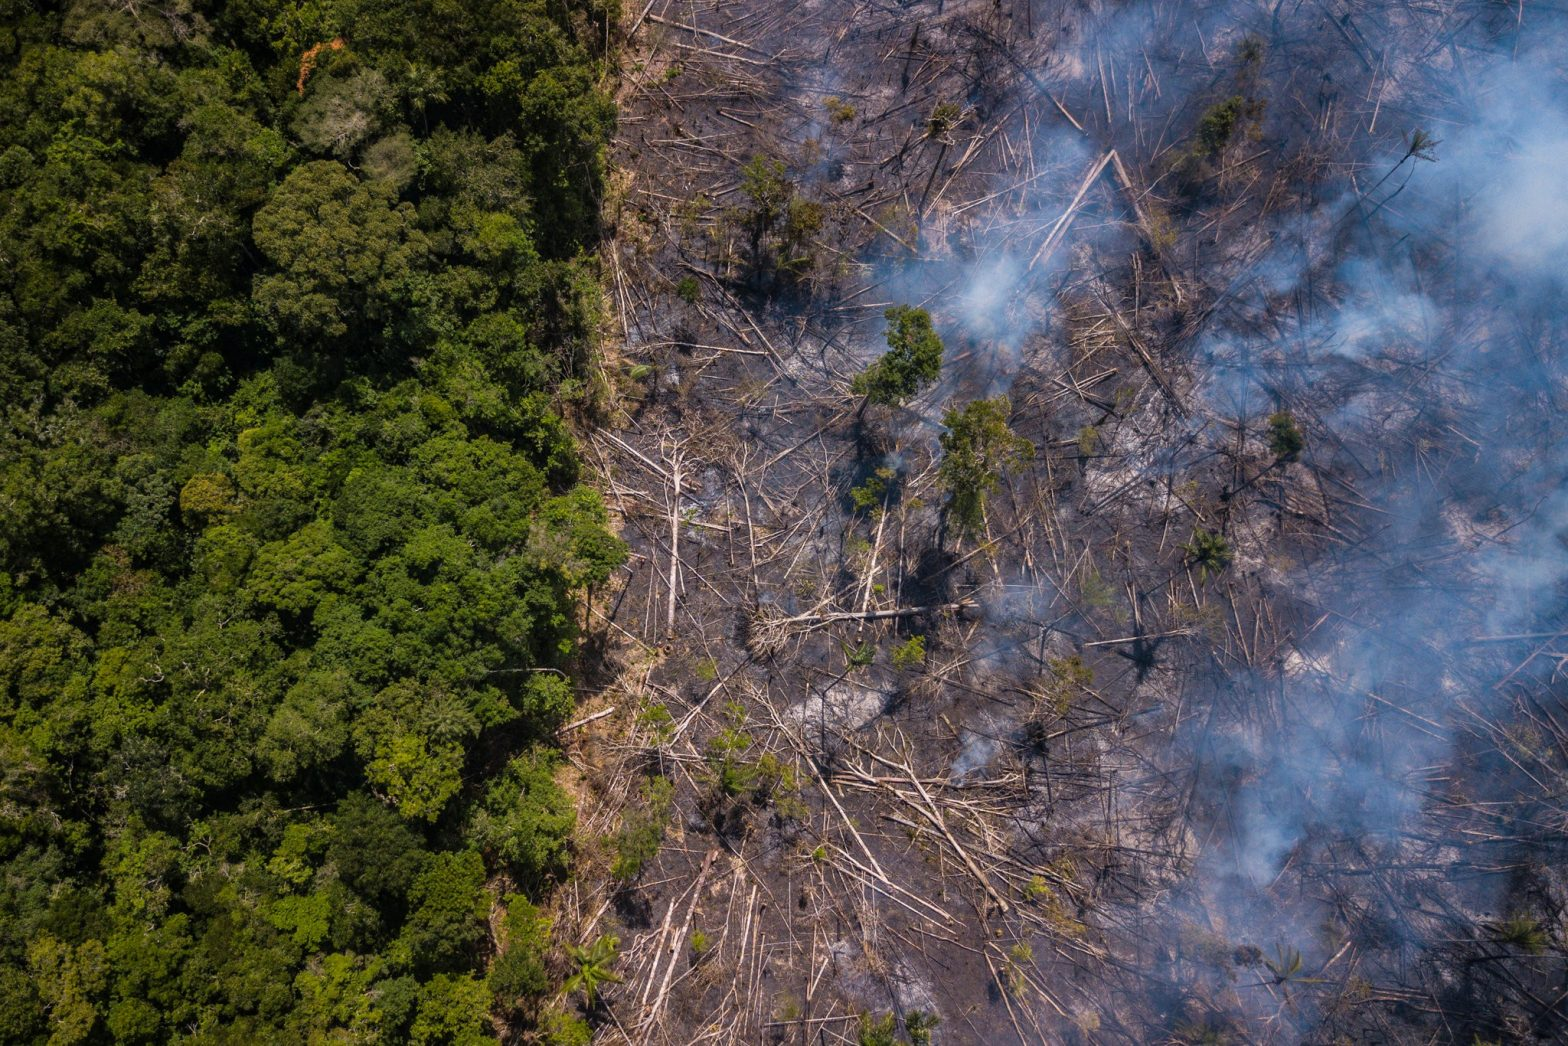 The Brazilian Rain Forest is dying